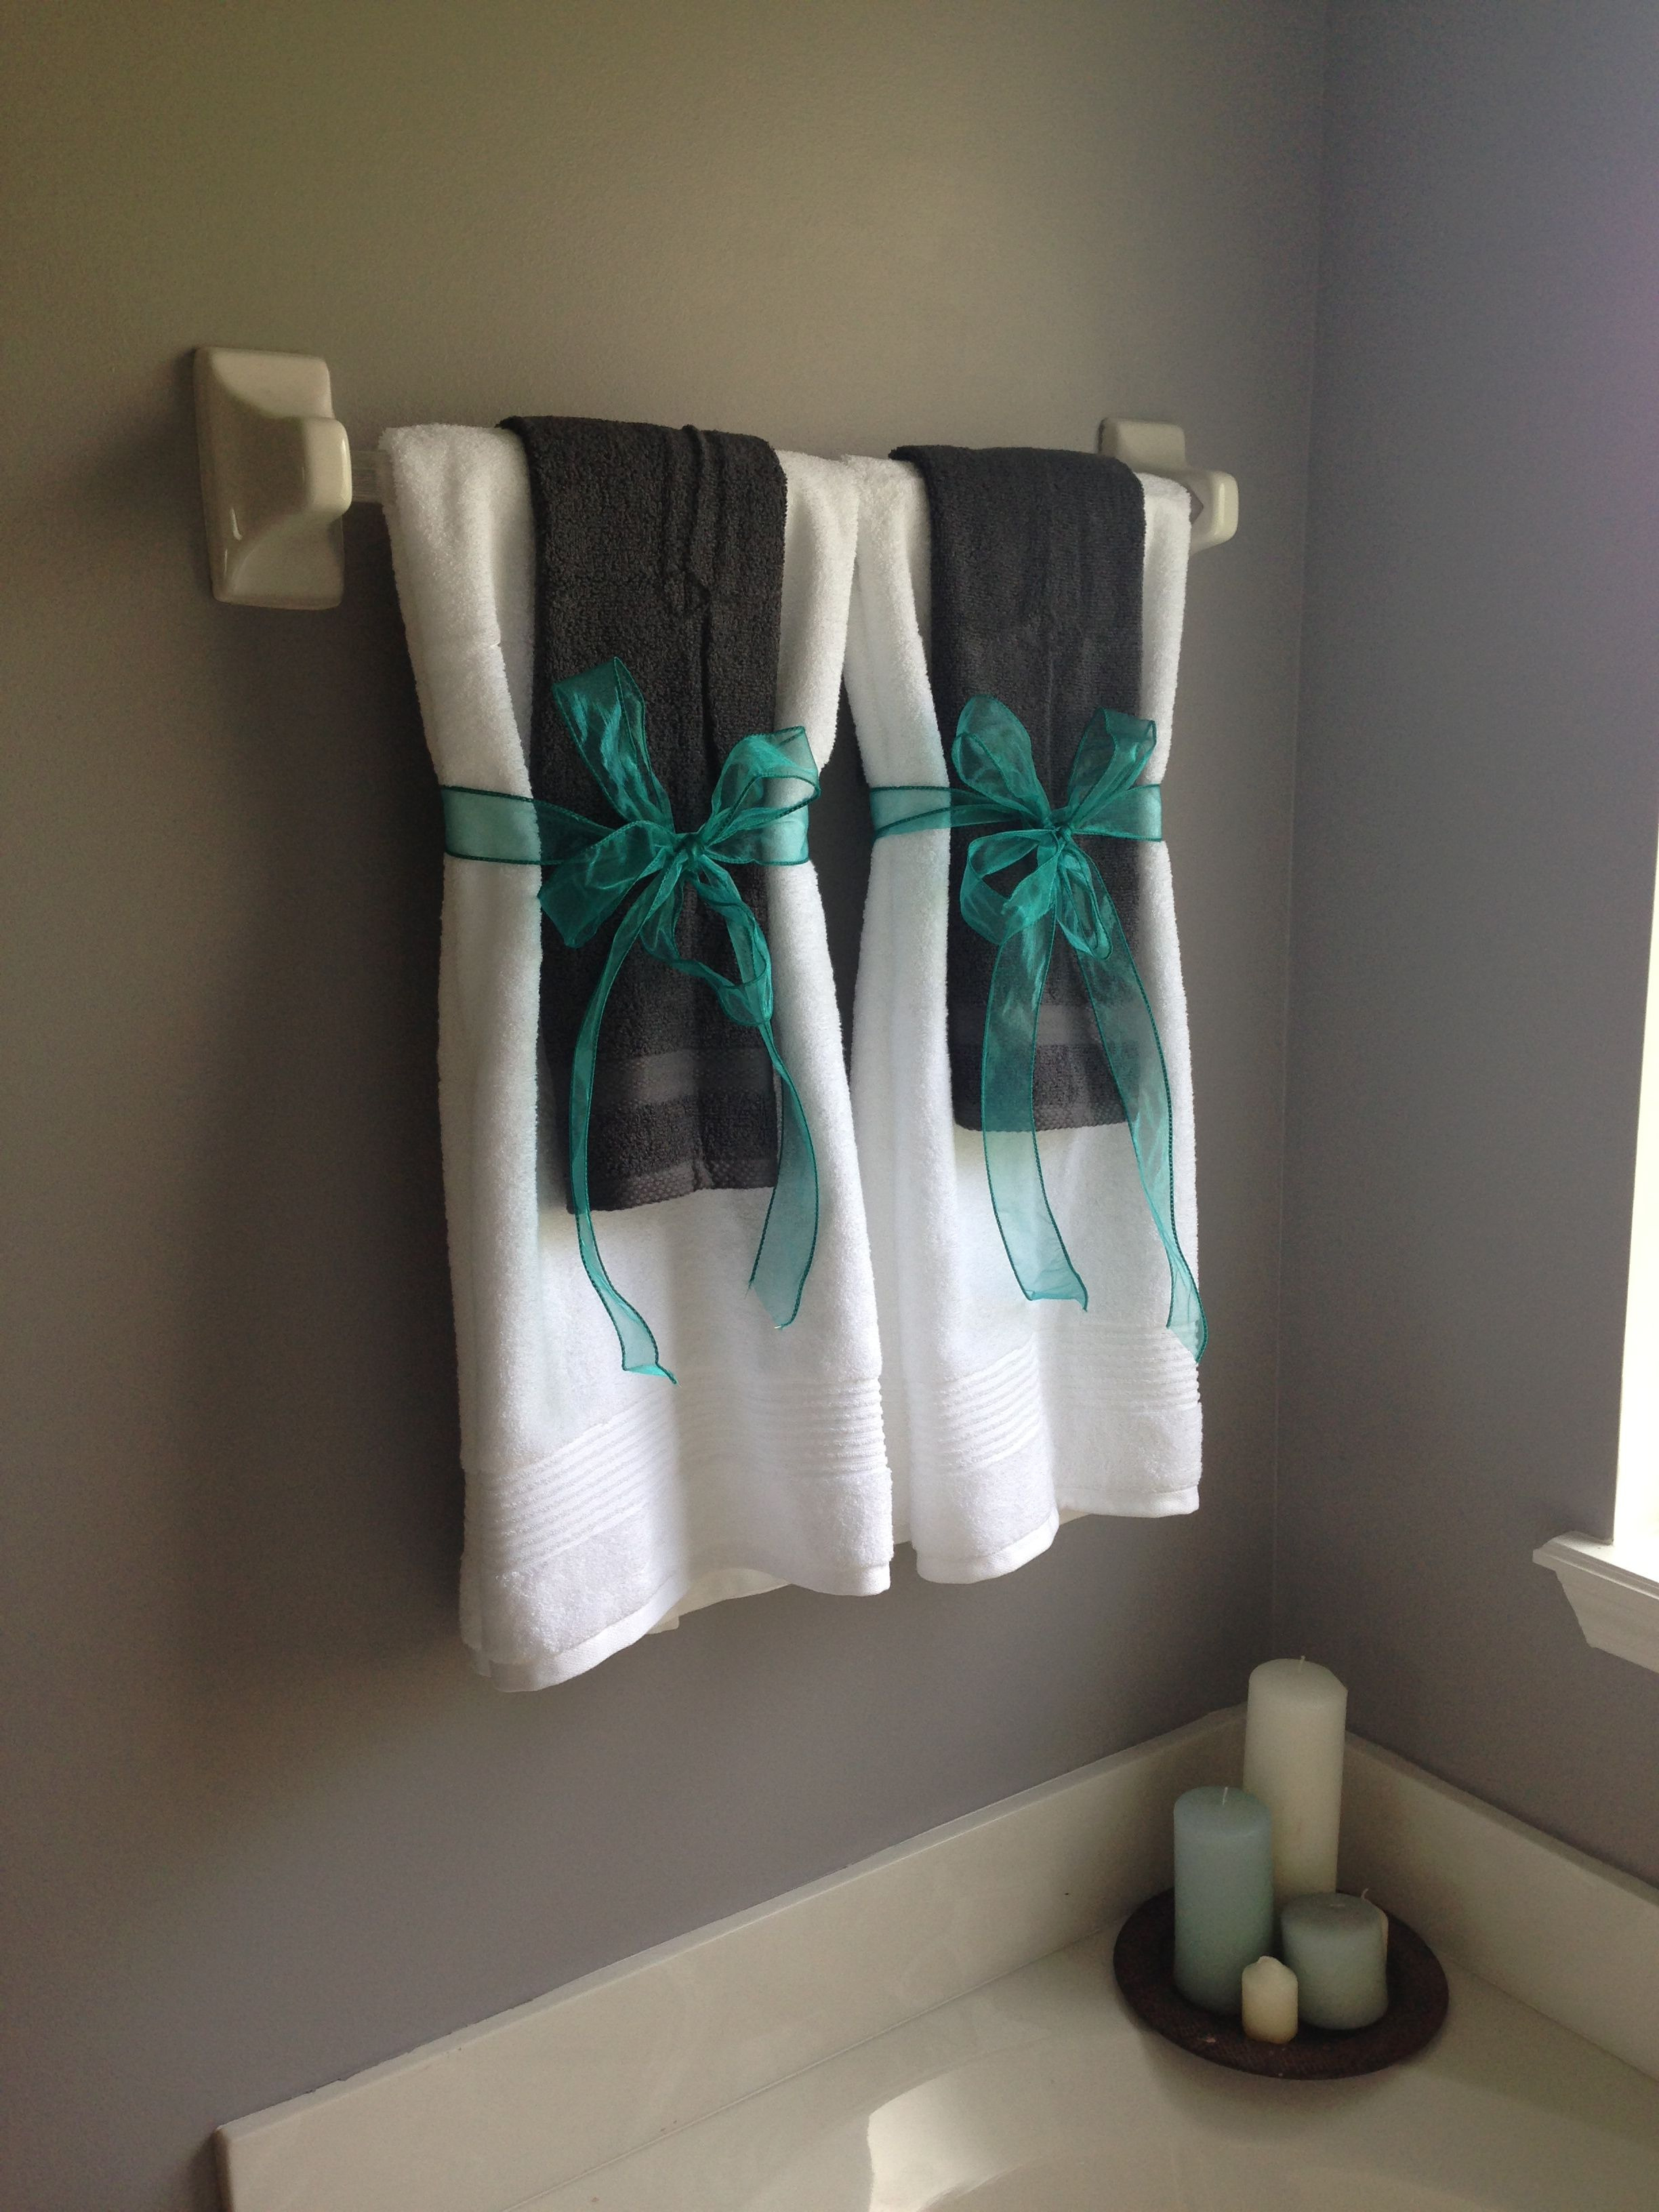 Decorative towels for Bathroom Ideas Beautiful so No One Uses the Decorative towels